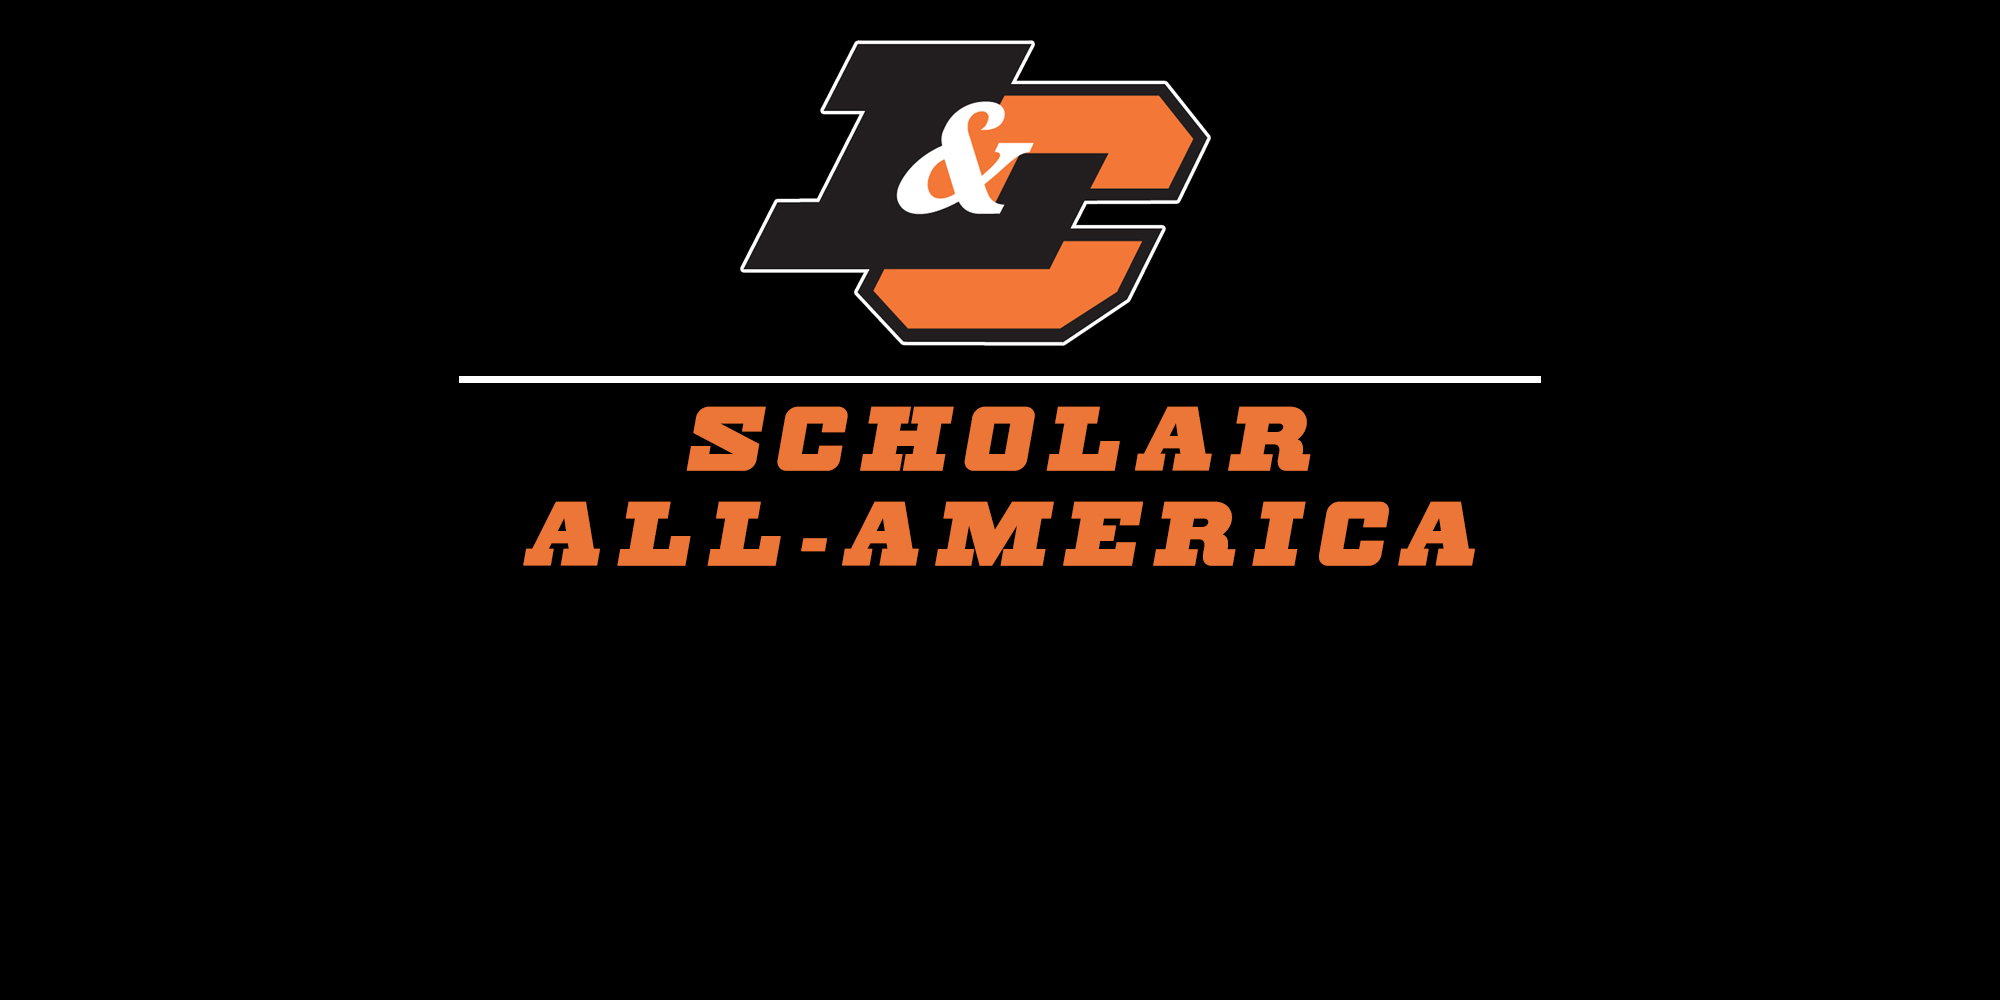 Blog: Pioneers return to CSCAA Scholar All-America list